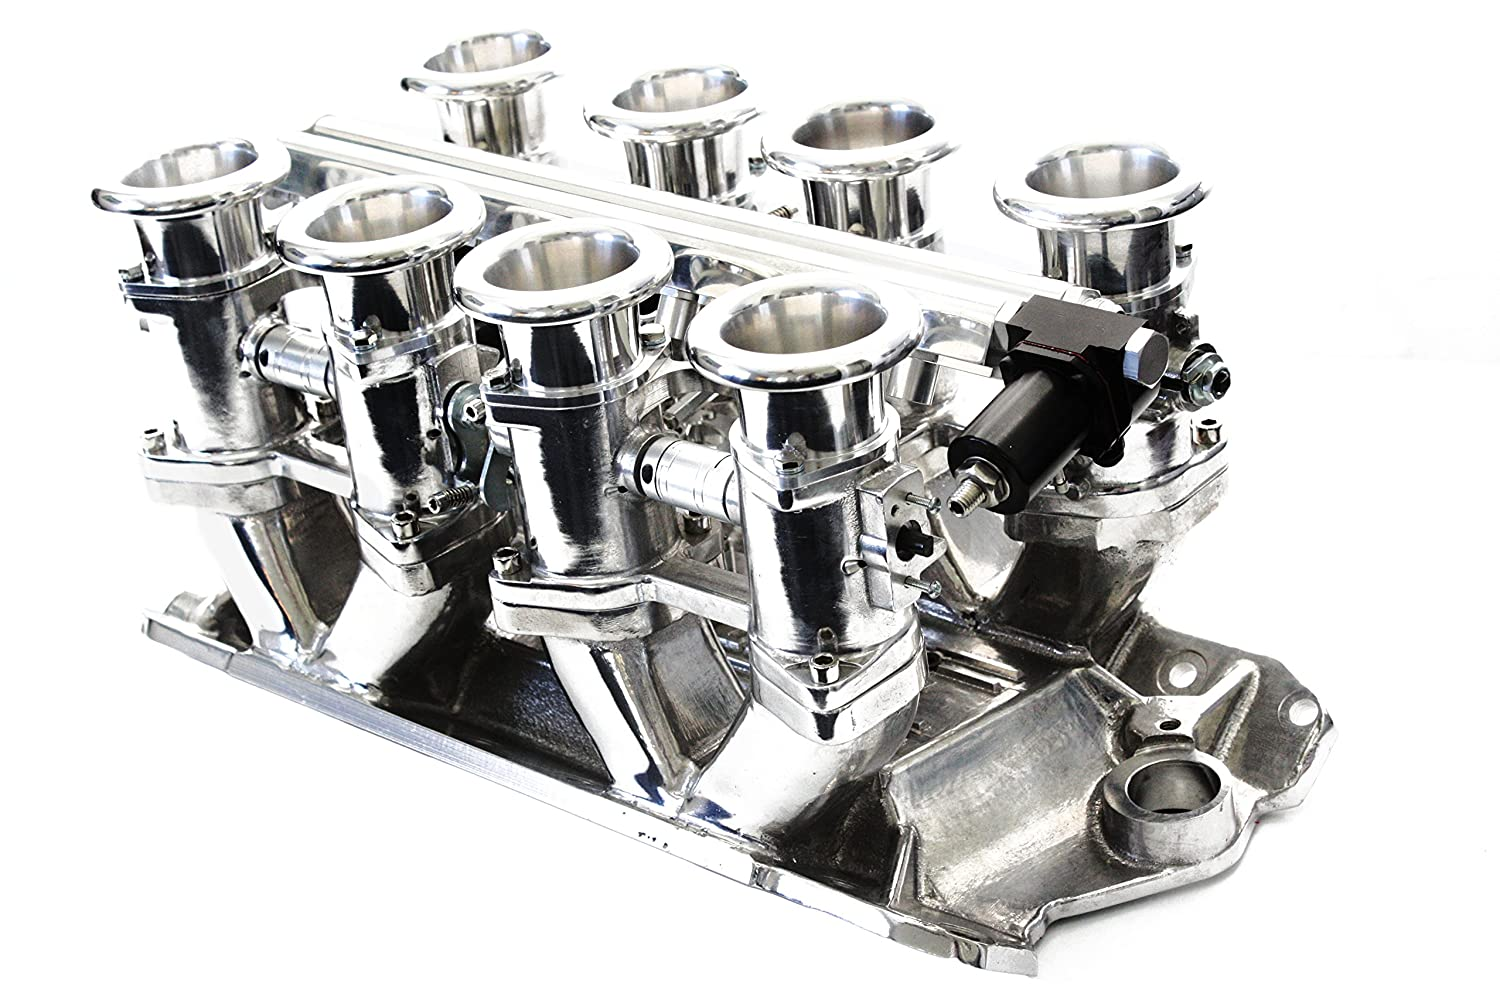 SBC Polished Aluminum EFI Fuel Injection Hilborn Style Down Draft